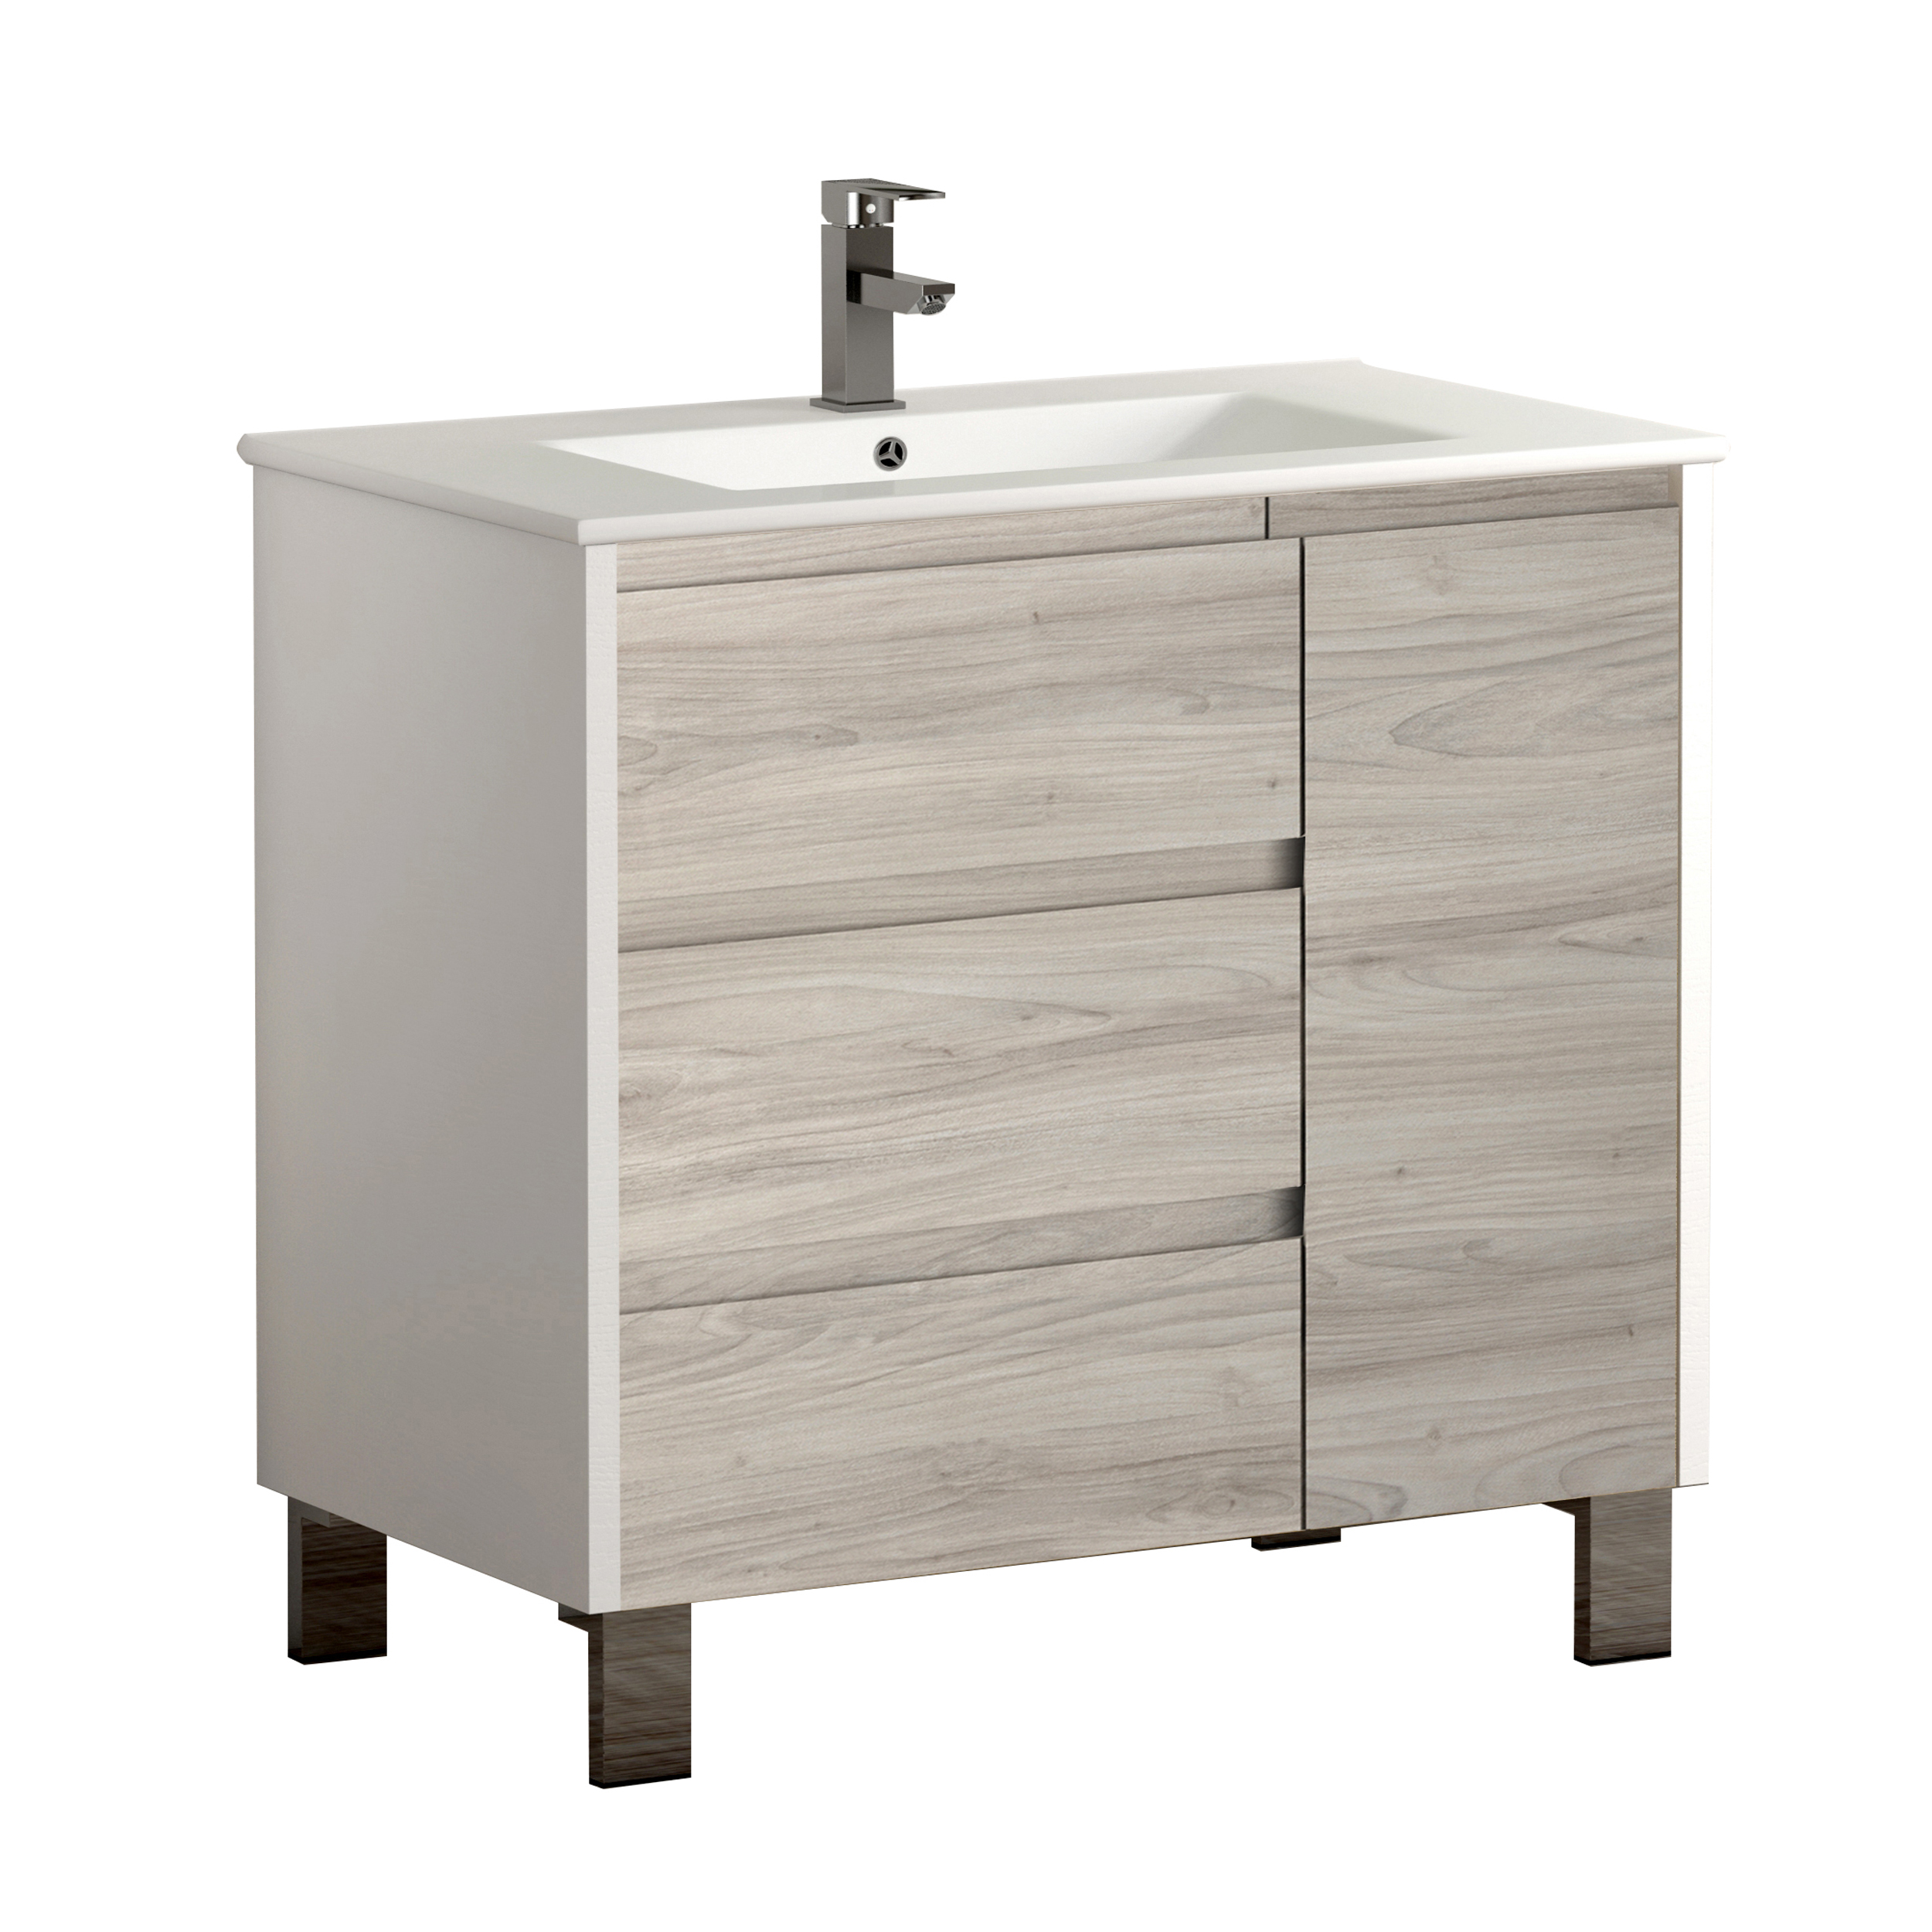 "EVVN543 32WHGRPN A Main - Eviva Bella 32"" White/Gray Pine Vanity with Porcelain sink"